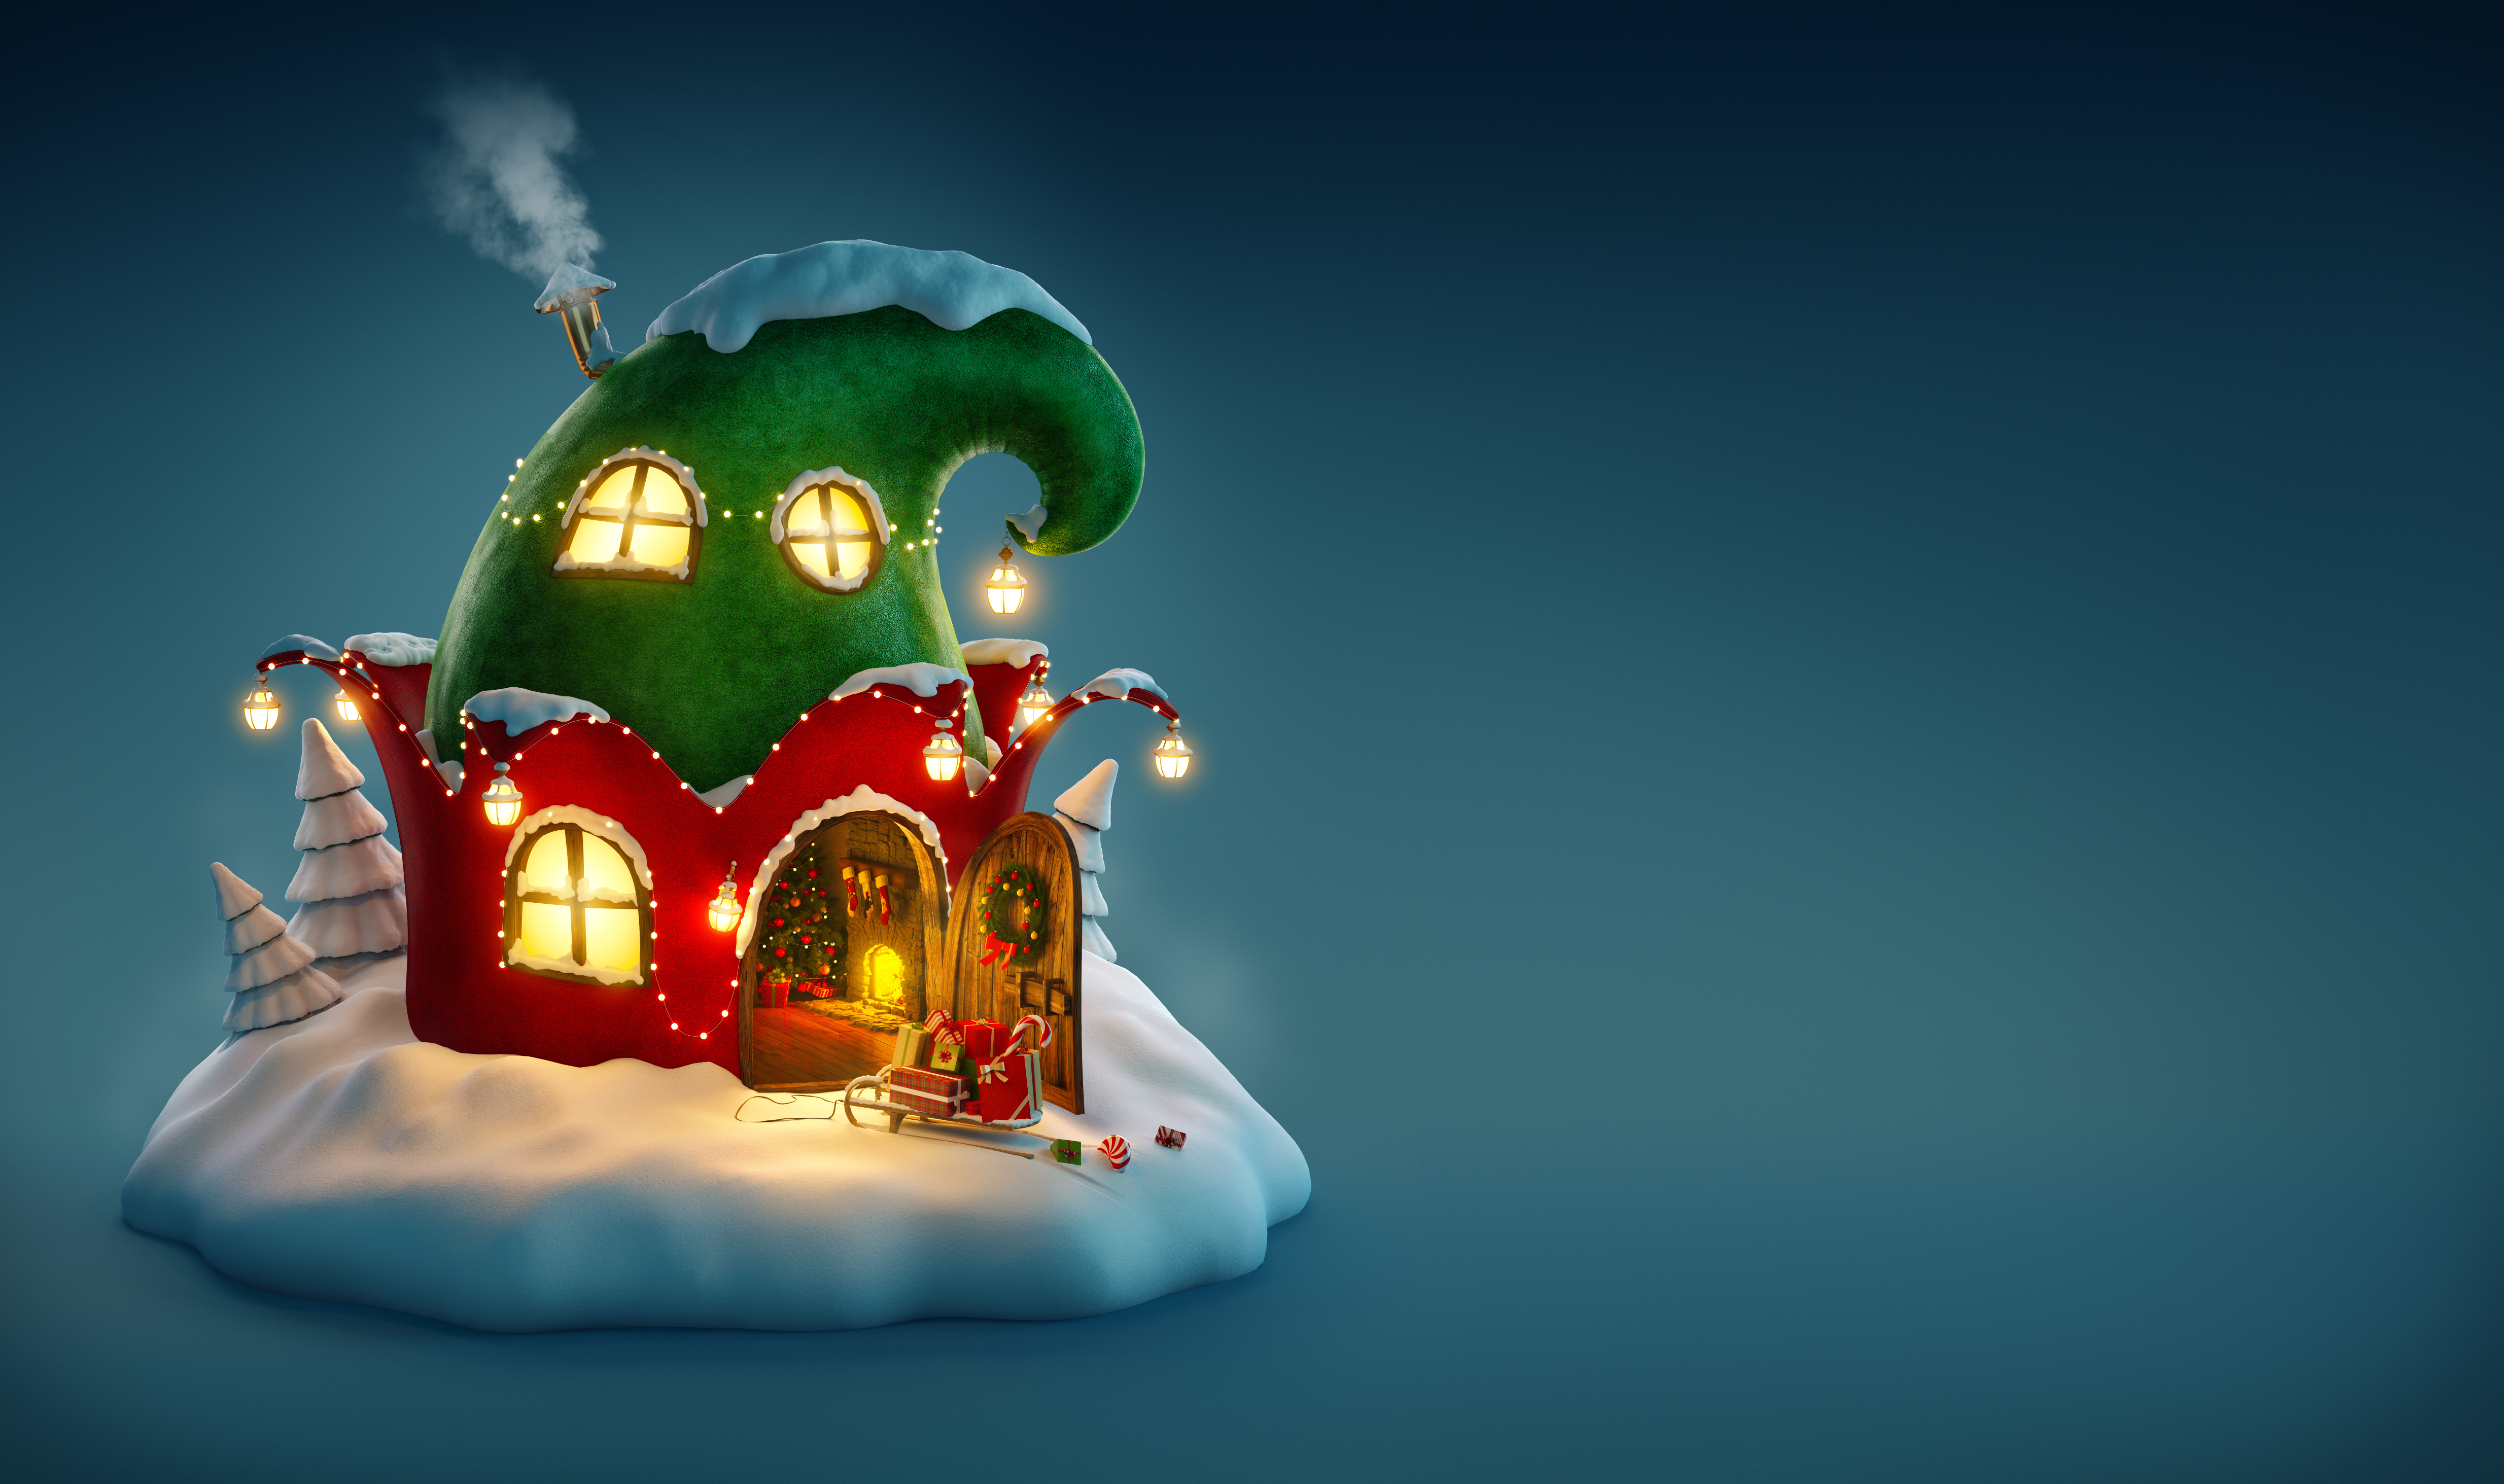 christmas fairy house 4k, hd celebrations, 4k wallpapers, images